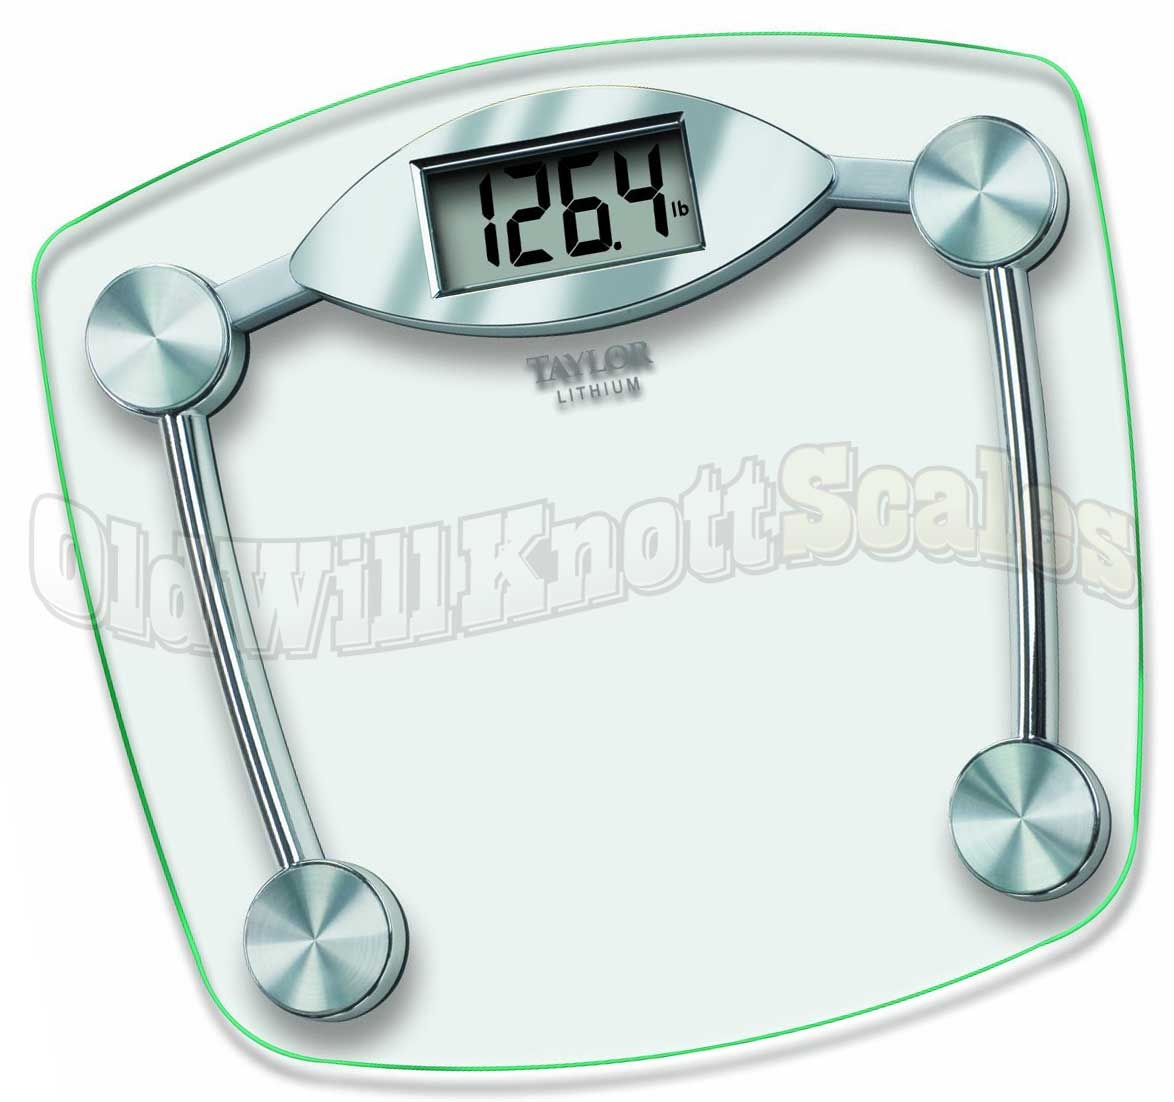 Taylor Bathroom Scales >> The Taylor 7506 Glass Lithium Electronic Bathroom Scale